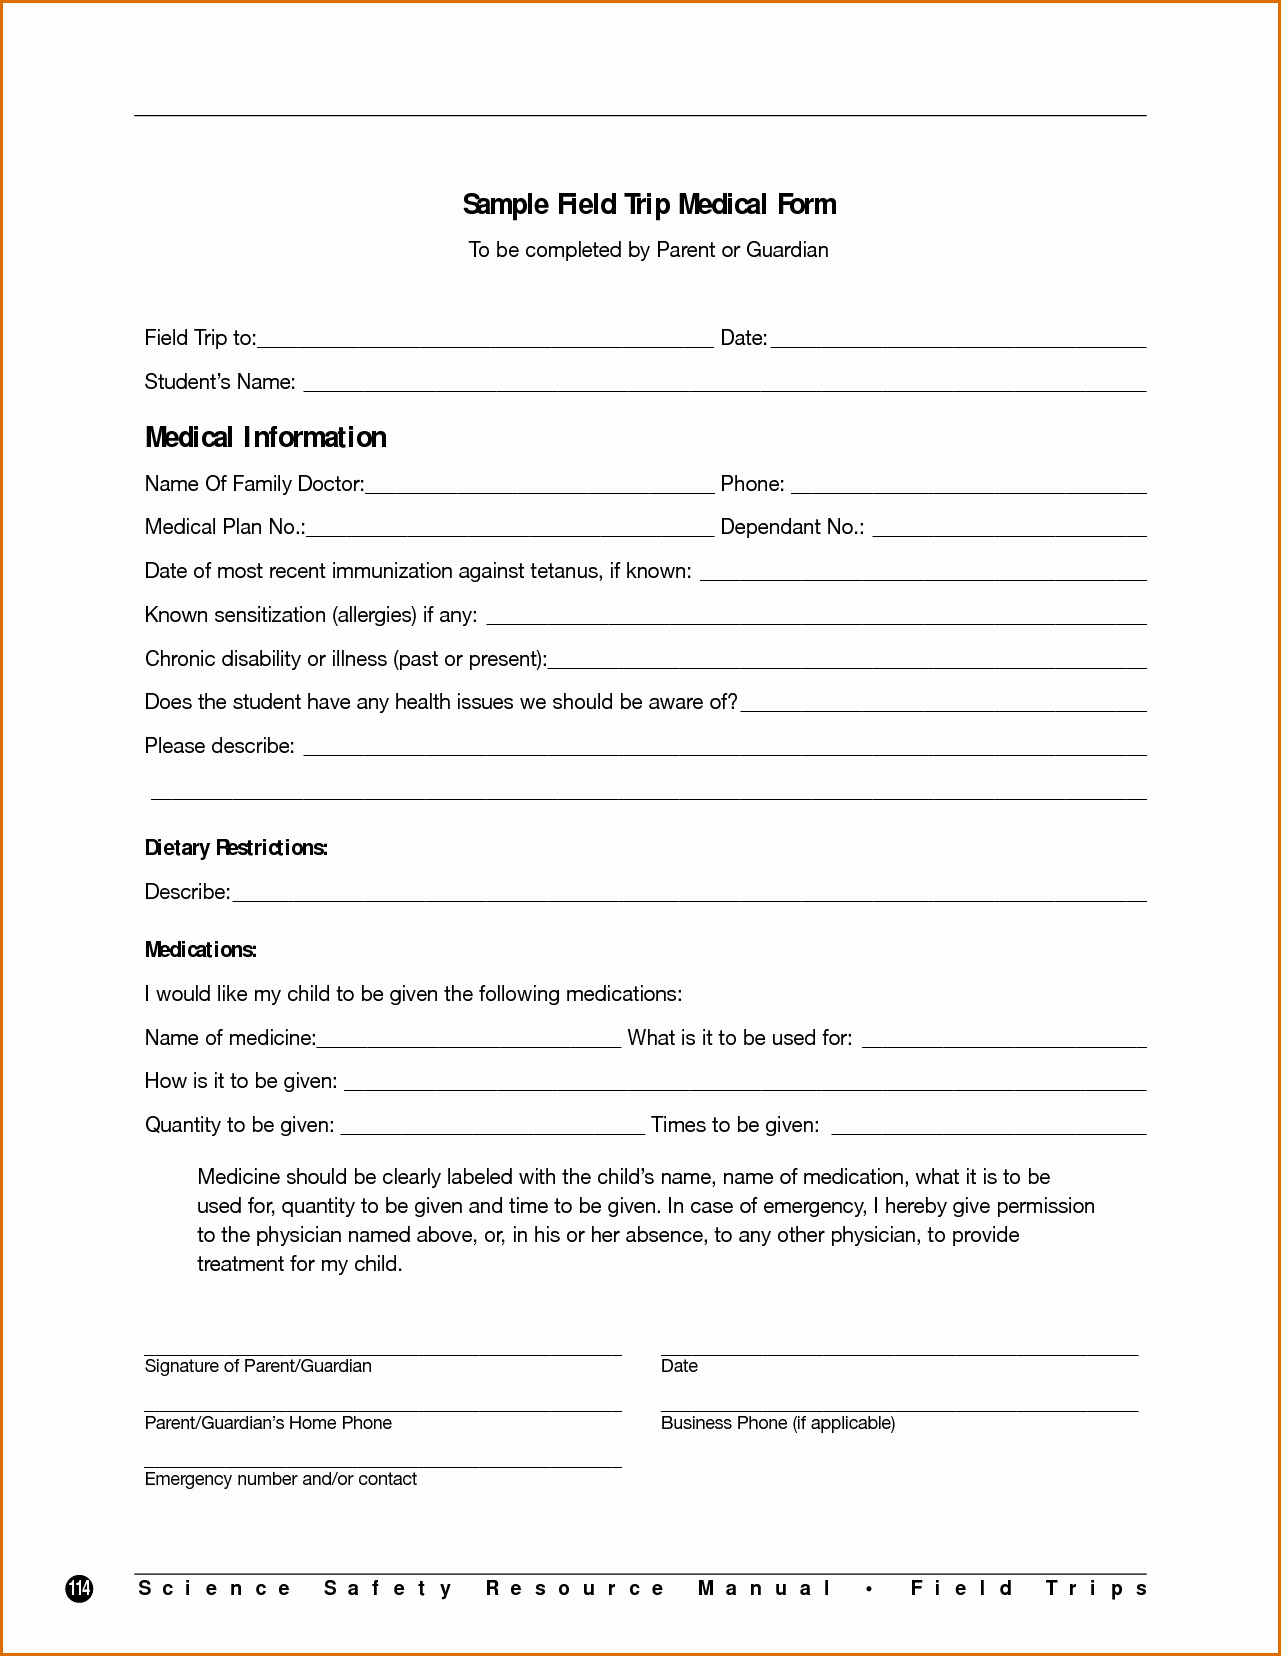 Field Trip form Template Inspirational 7 Field Trip form Template